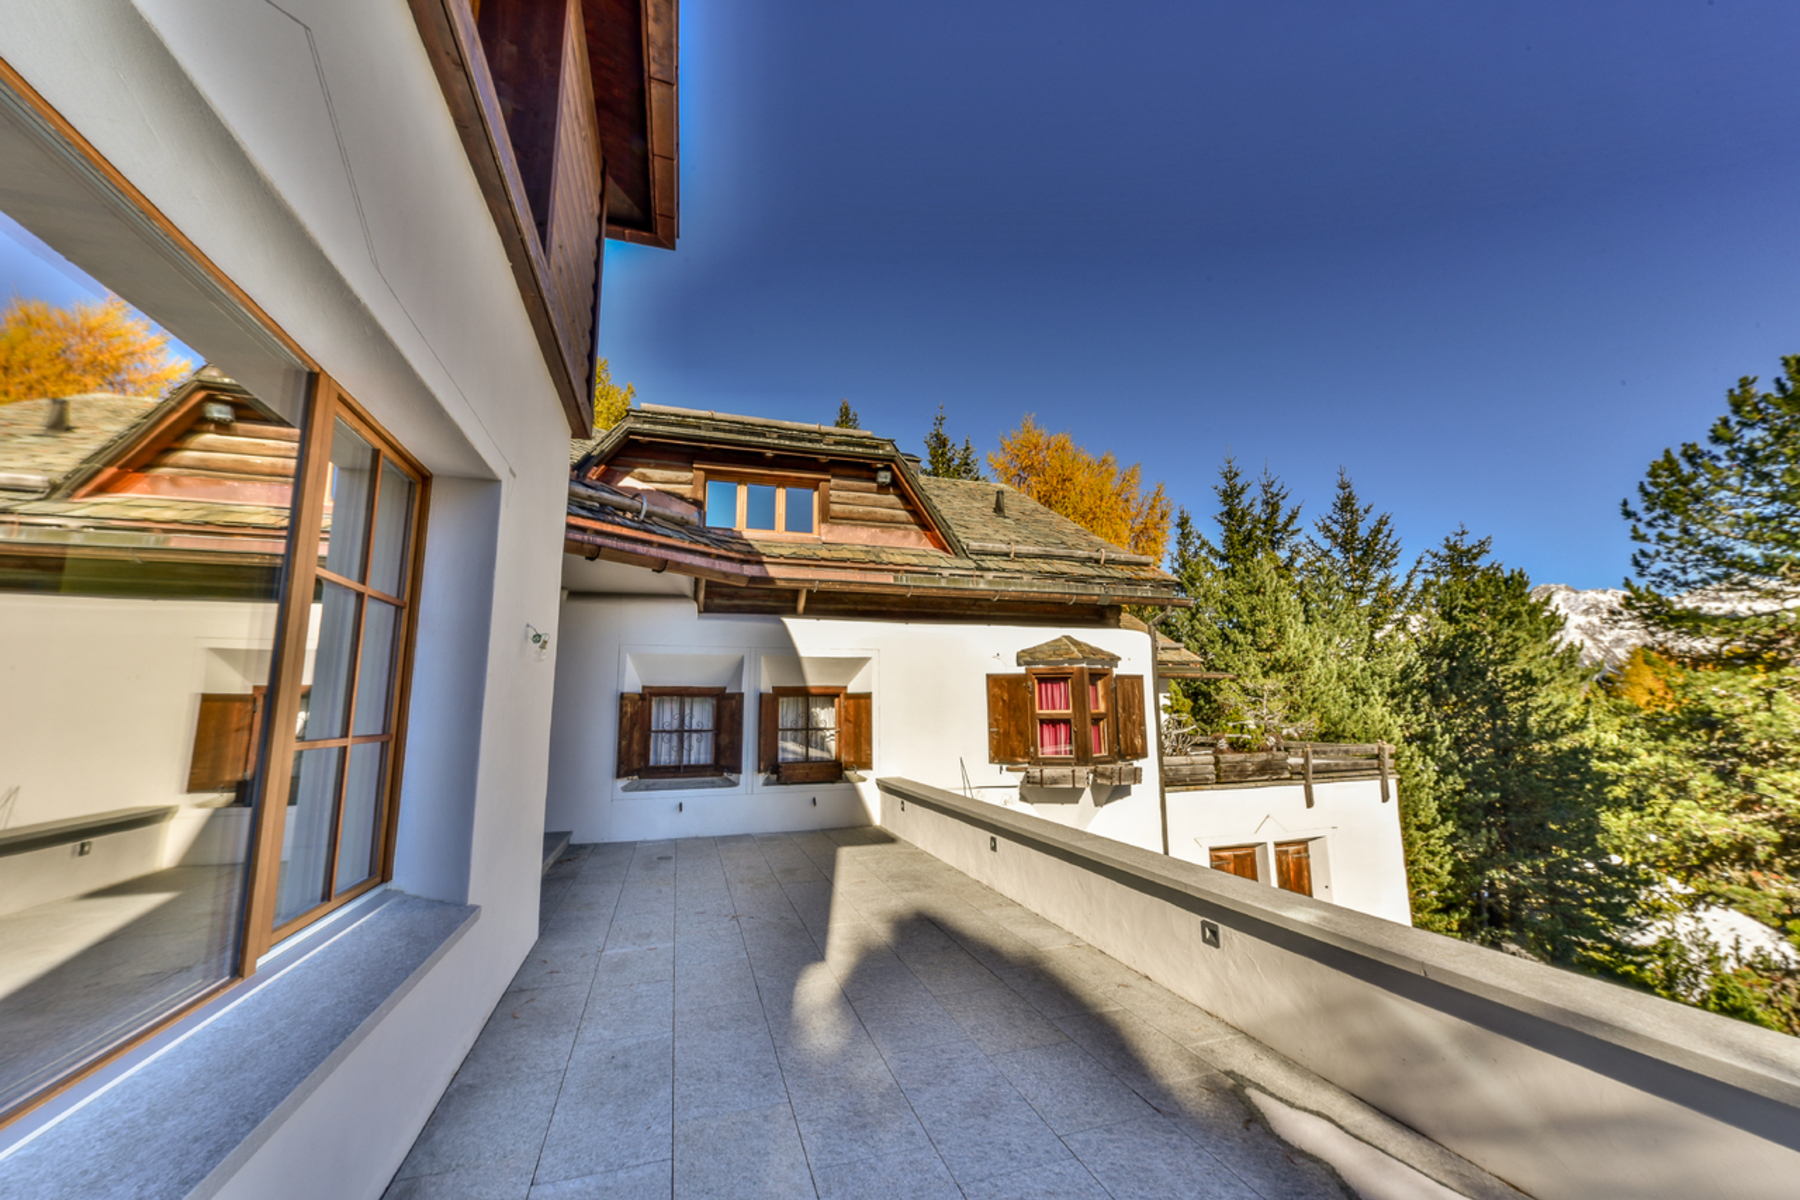 Casa Unifamiliar por un Venta en Luxurious villa on the Suvretta hillside St. Moritz, Grisons, 7500 Suiza